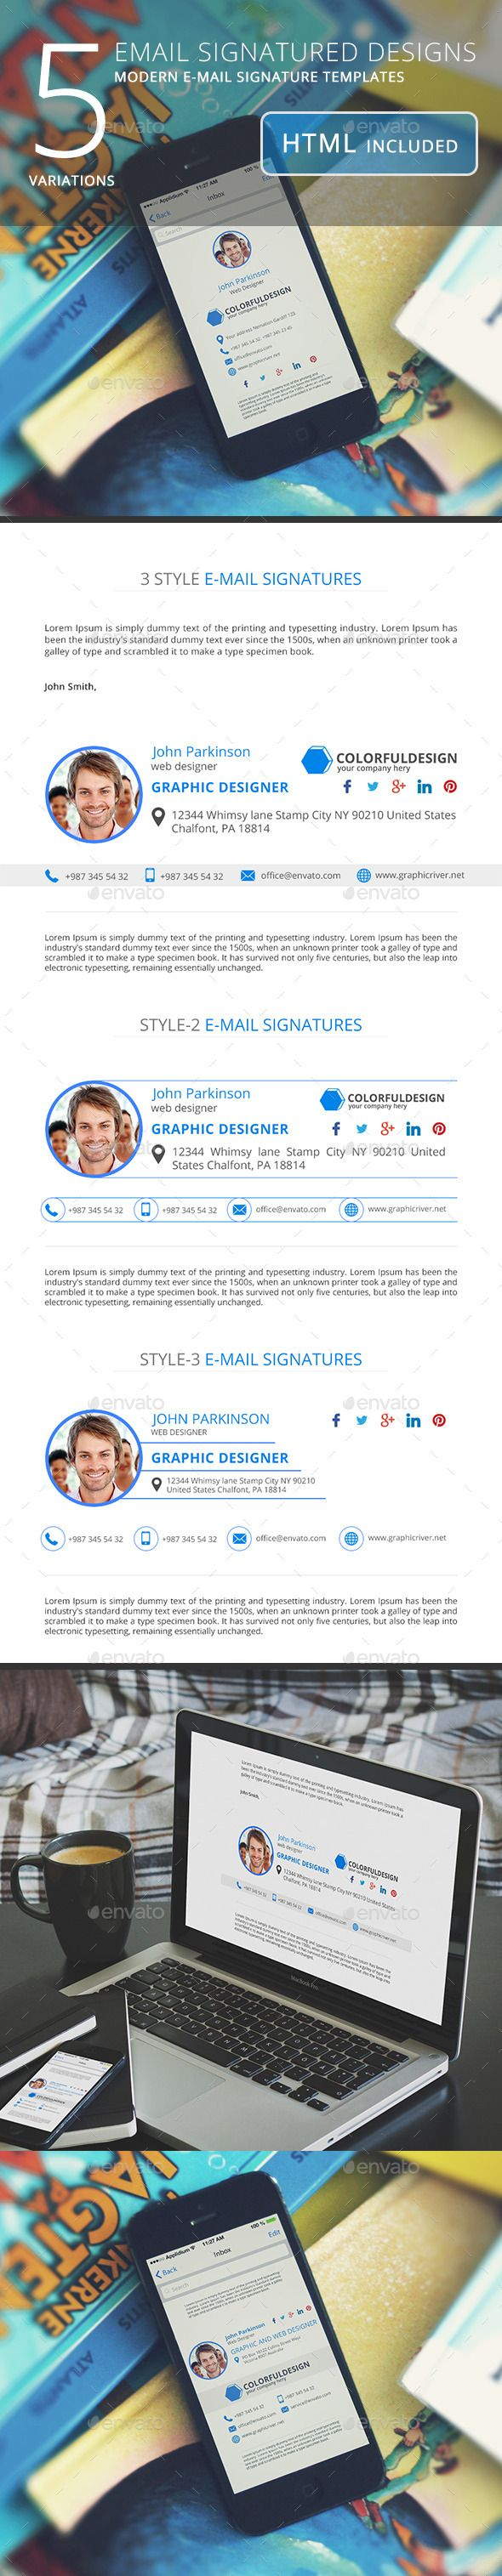 Email Signature Templates - Miscellaneous Social Media